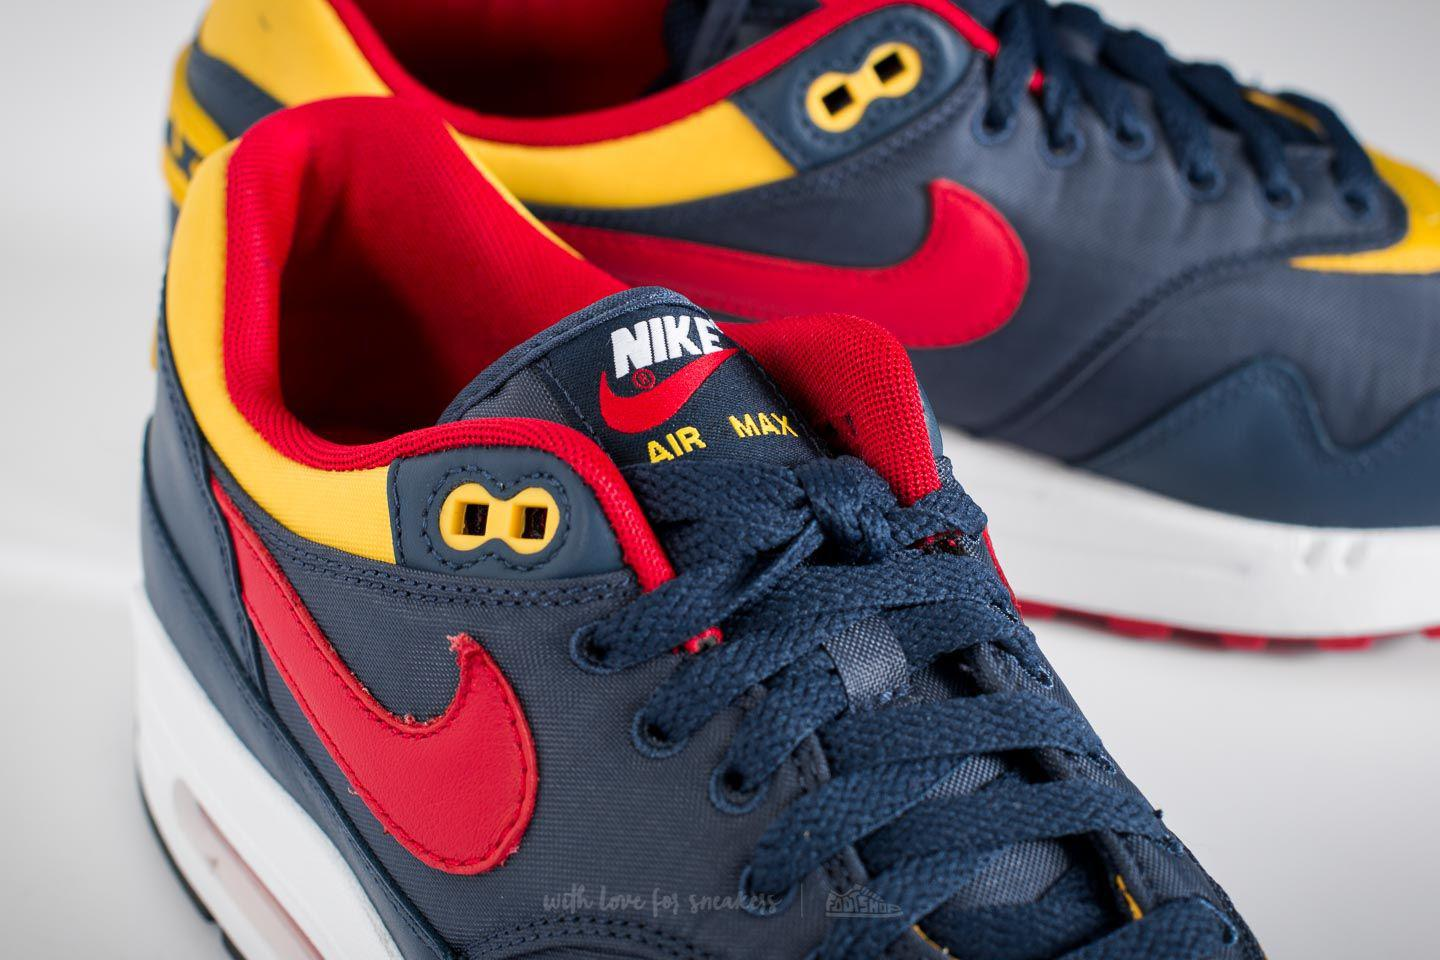 new styles dbe50 fa333 Nike Air Max 1 Premium Navy  Gym Red-vivid Sulfur for Men - Lyst